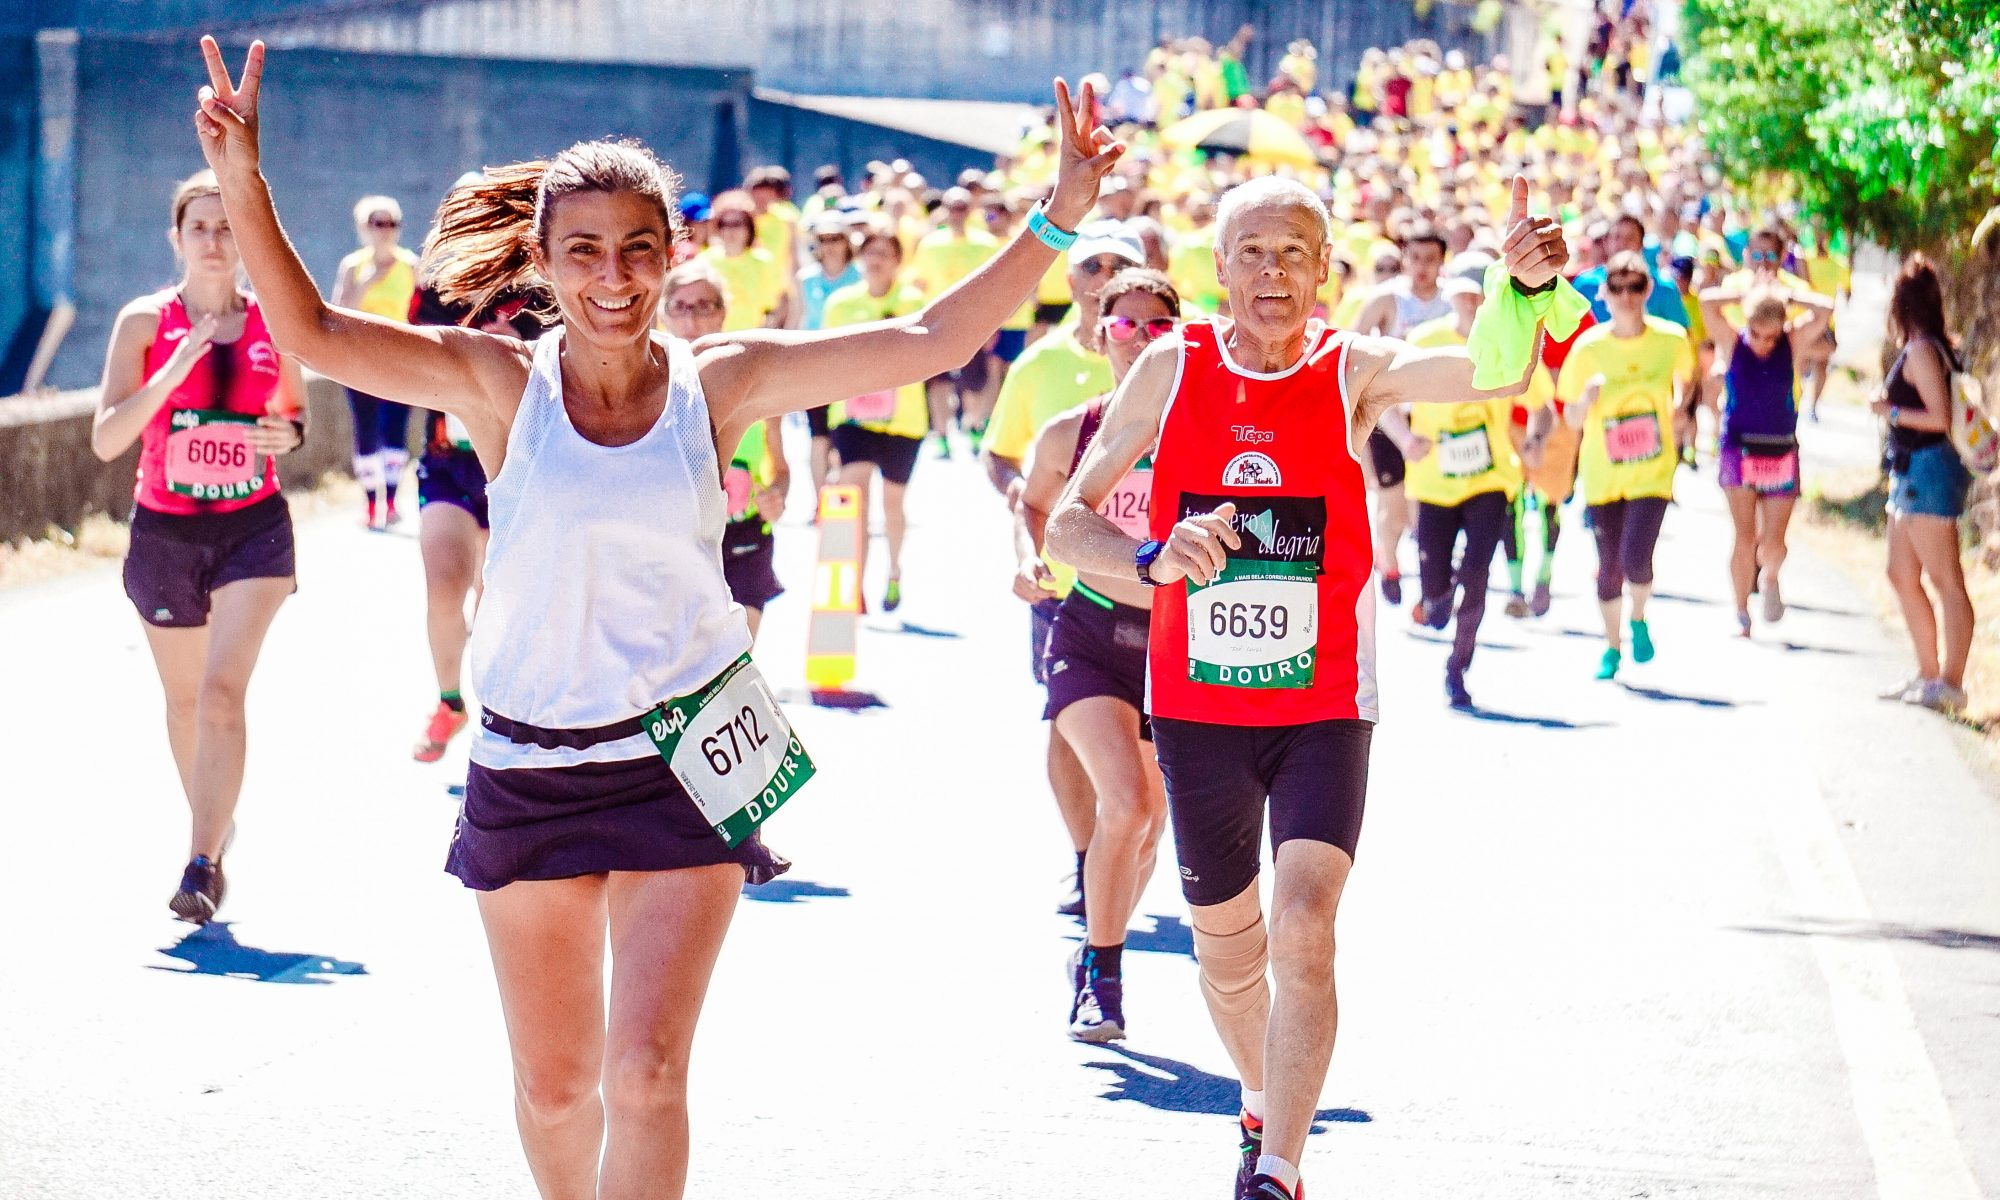 Canva - Female and Male Runners on a Marathon